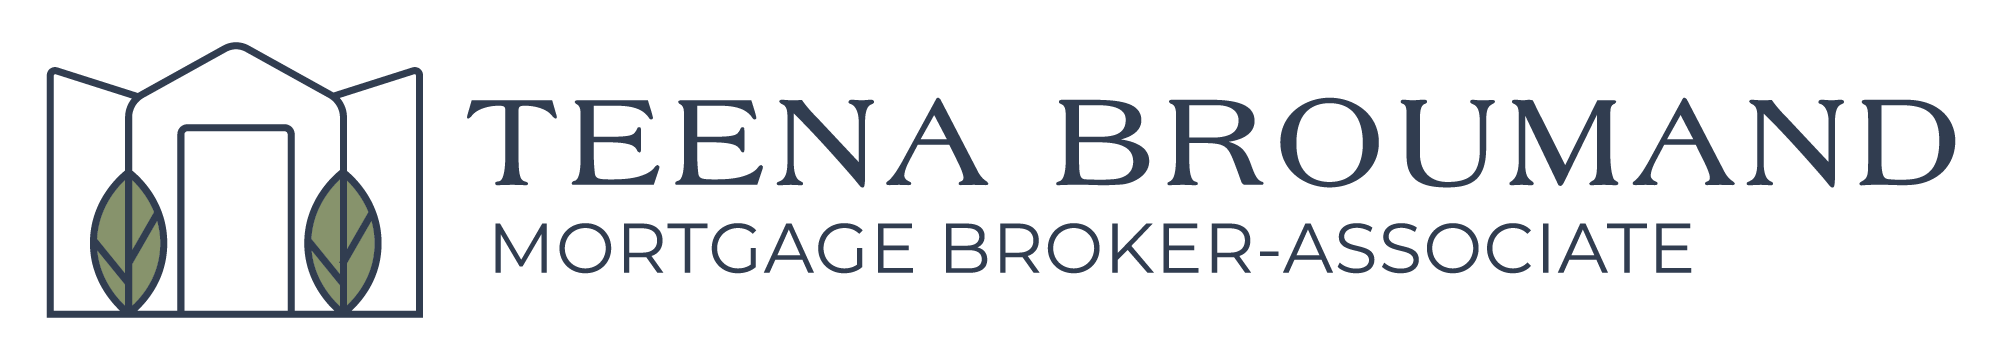 teena broumand mortgage broker associate